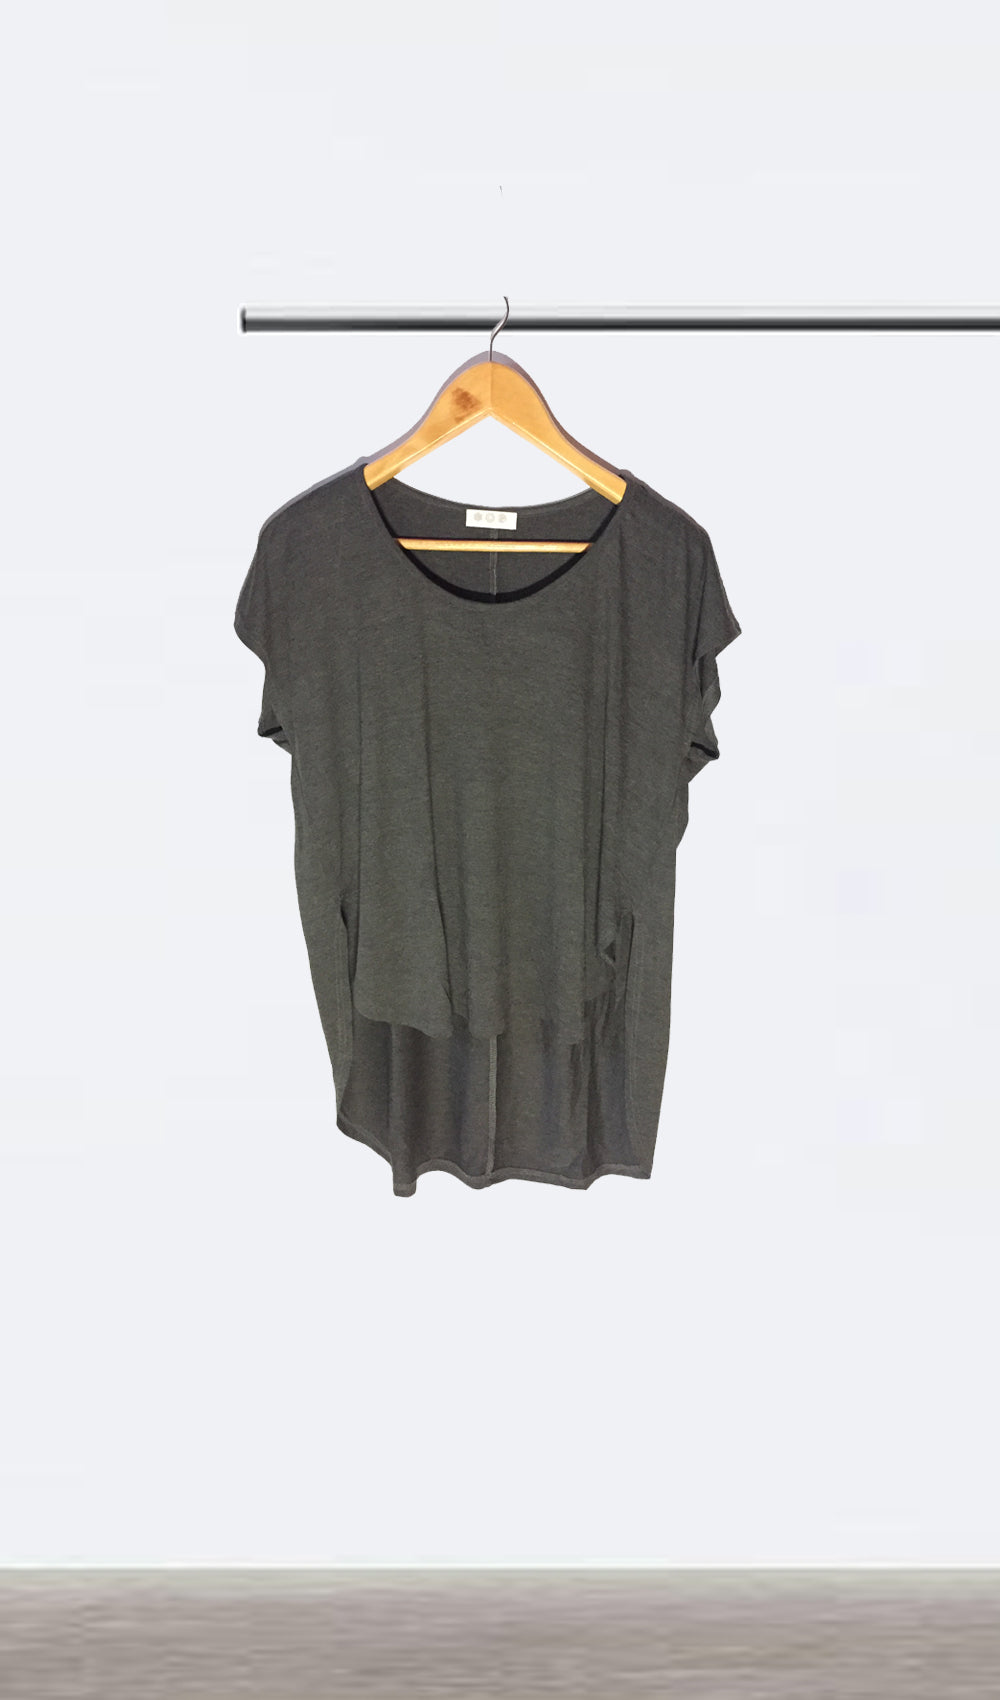 Ellipsis - The Charcoal Oversized Tee